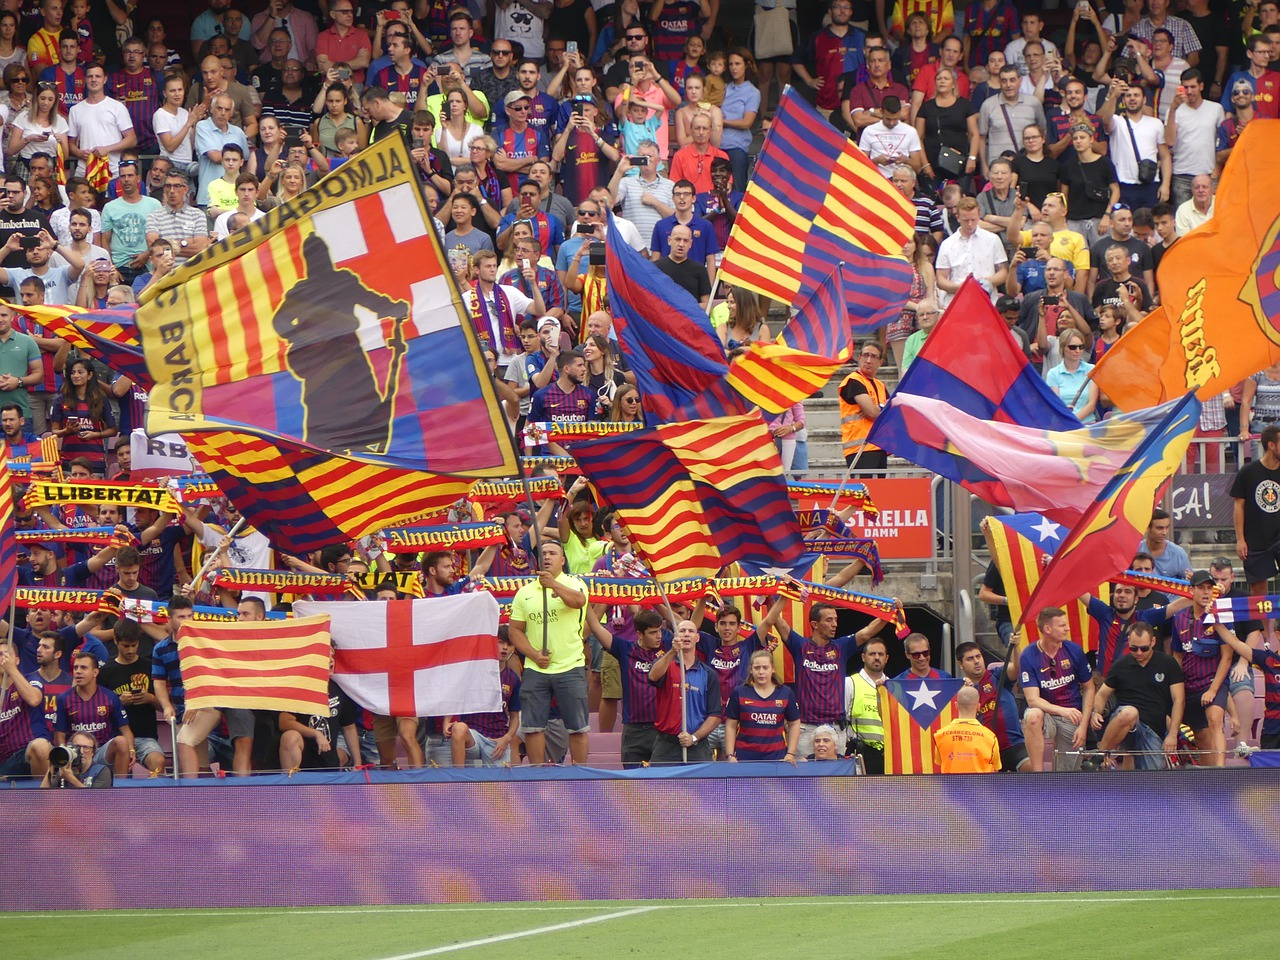 Barcelona - Fans waving flags